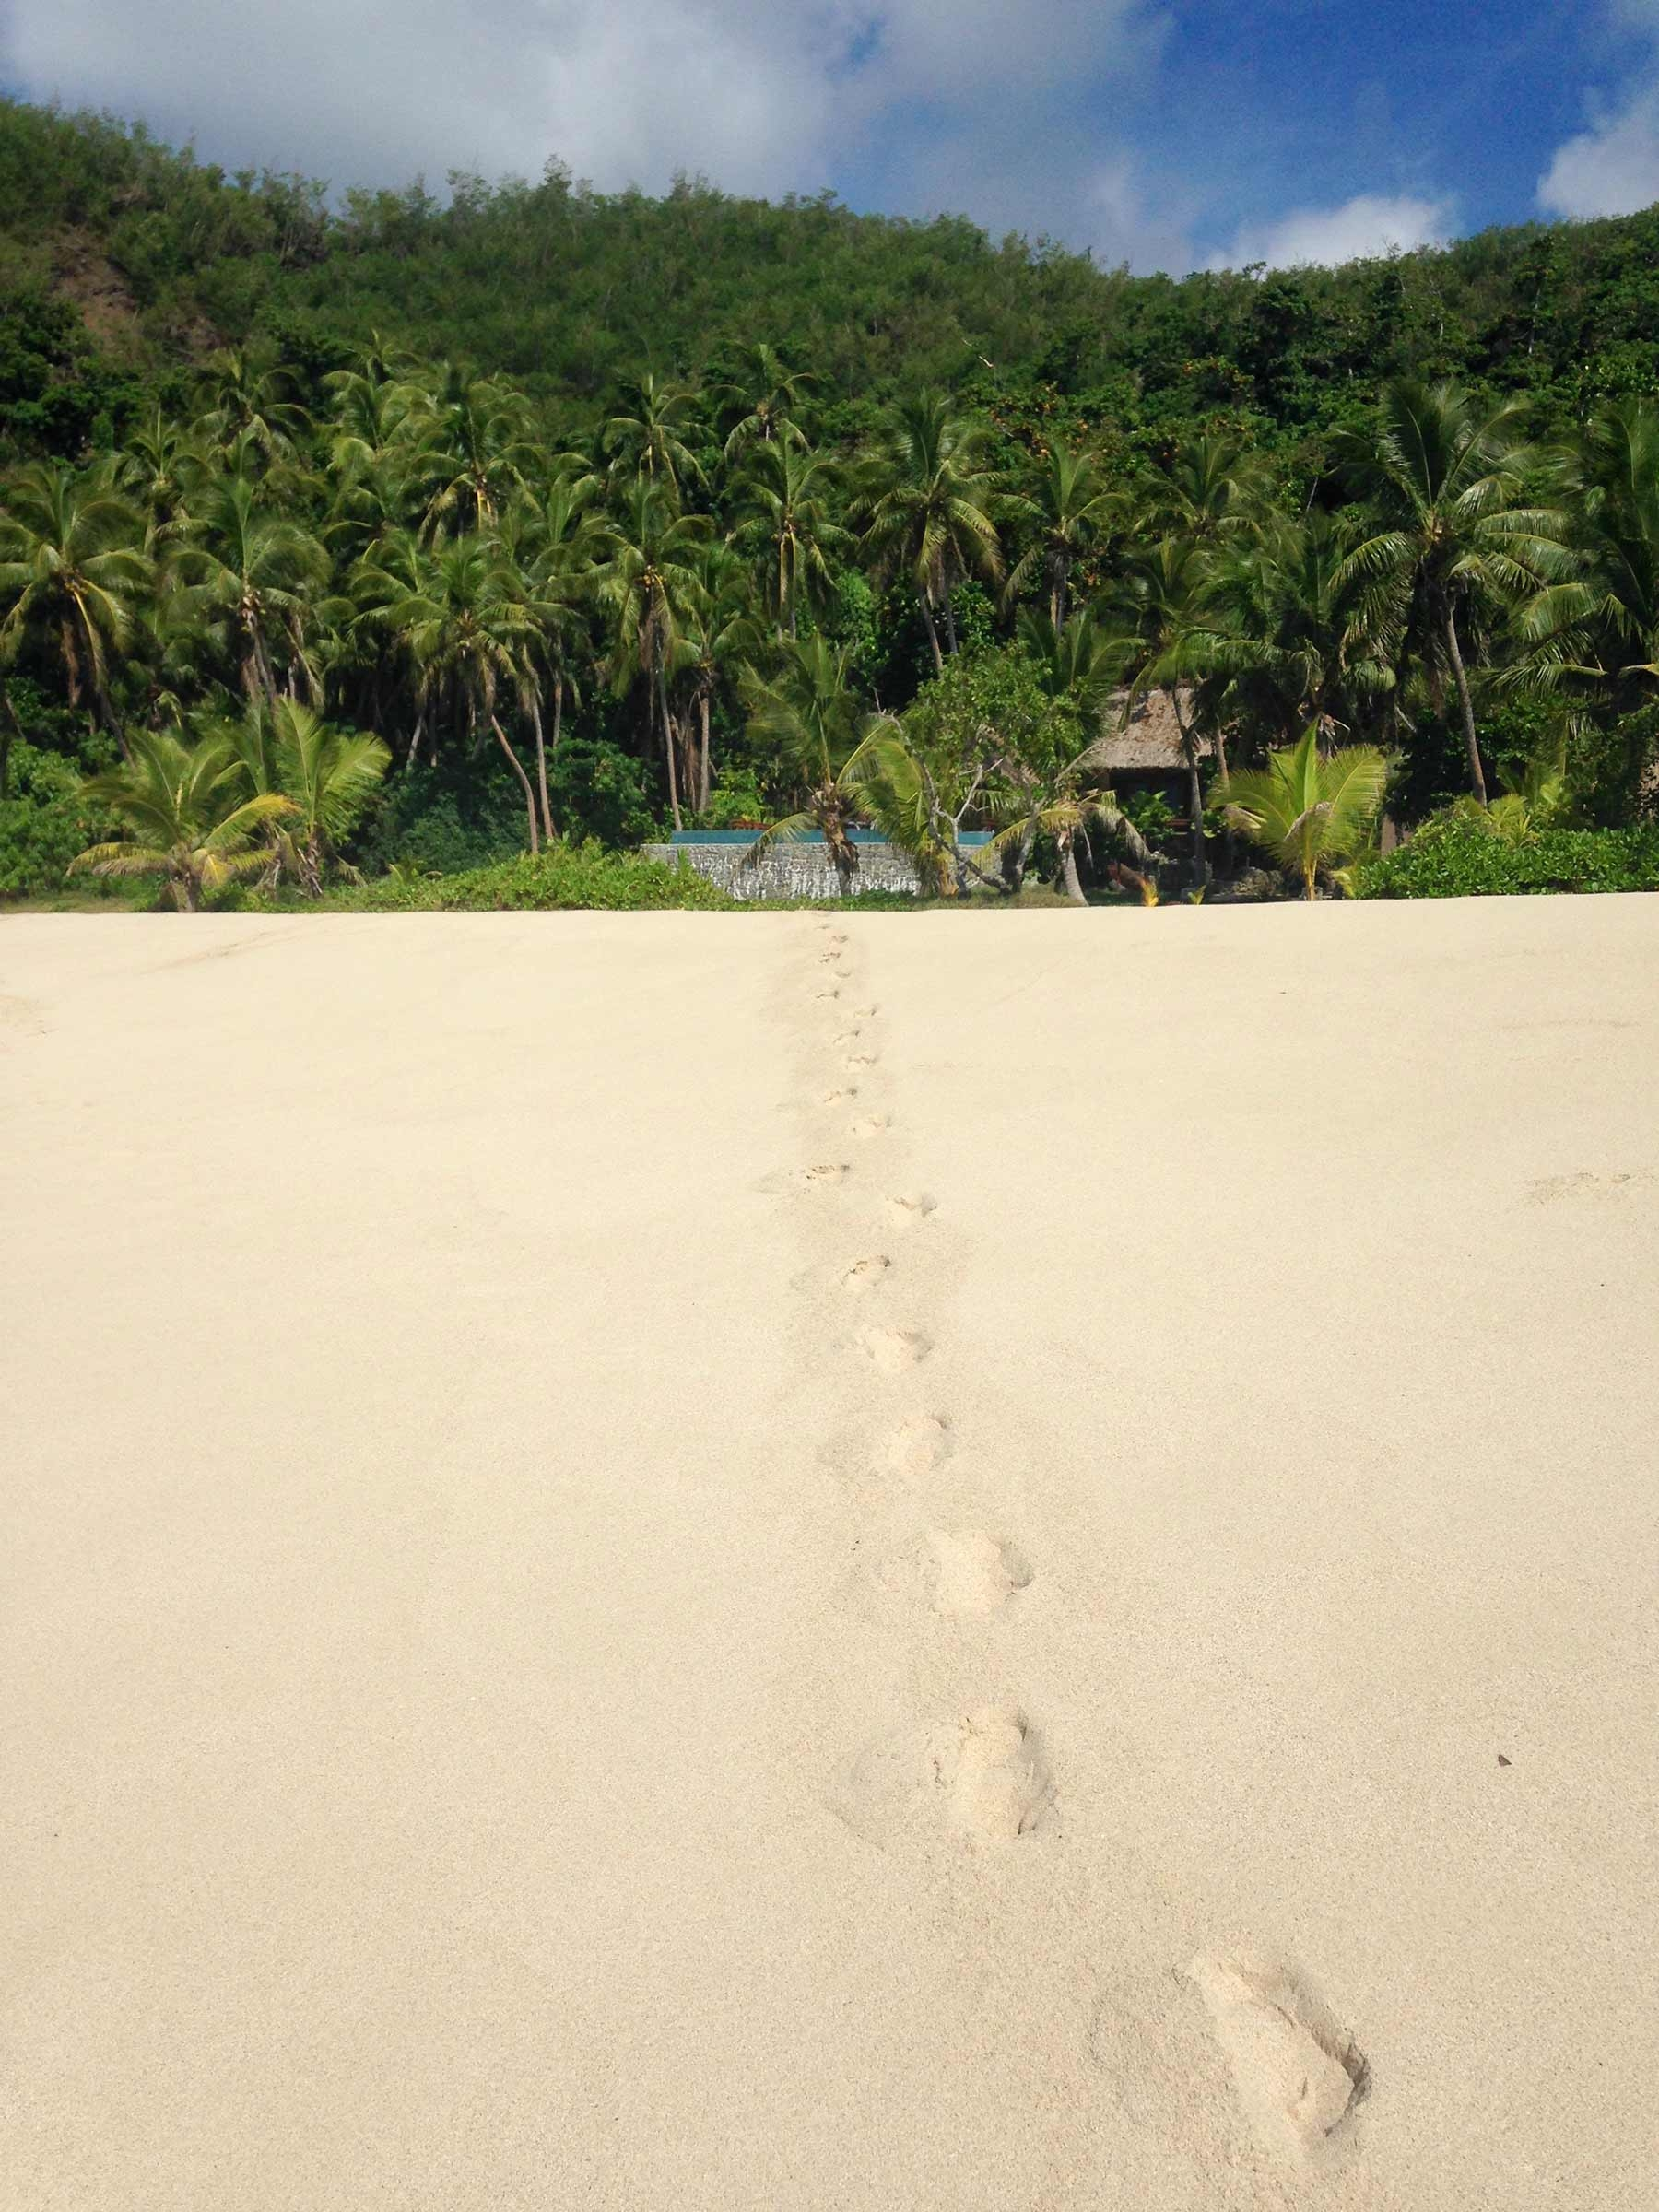 Footsteps through the sand from the mainland to the sea